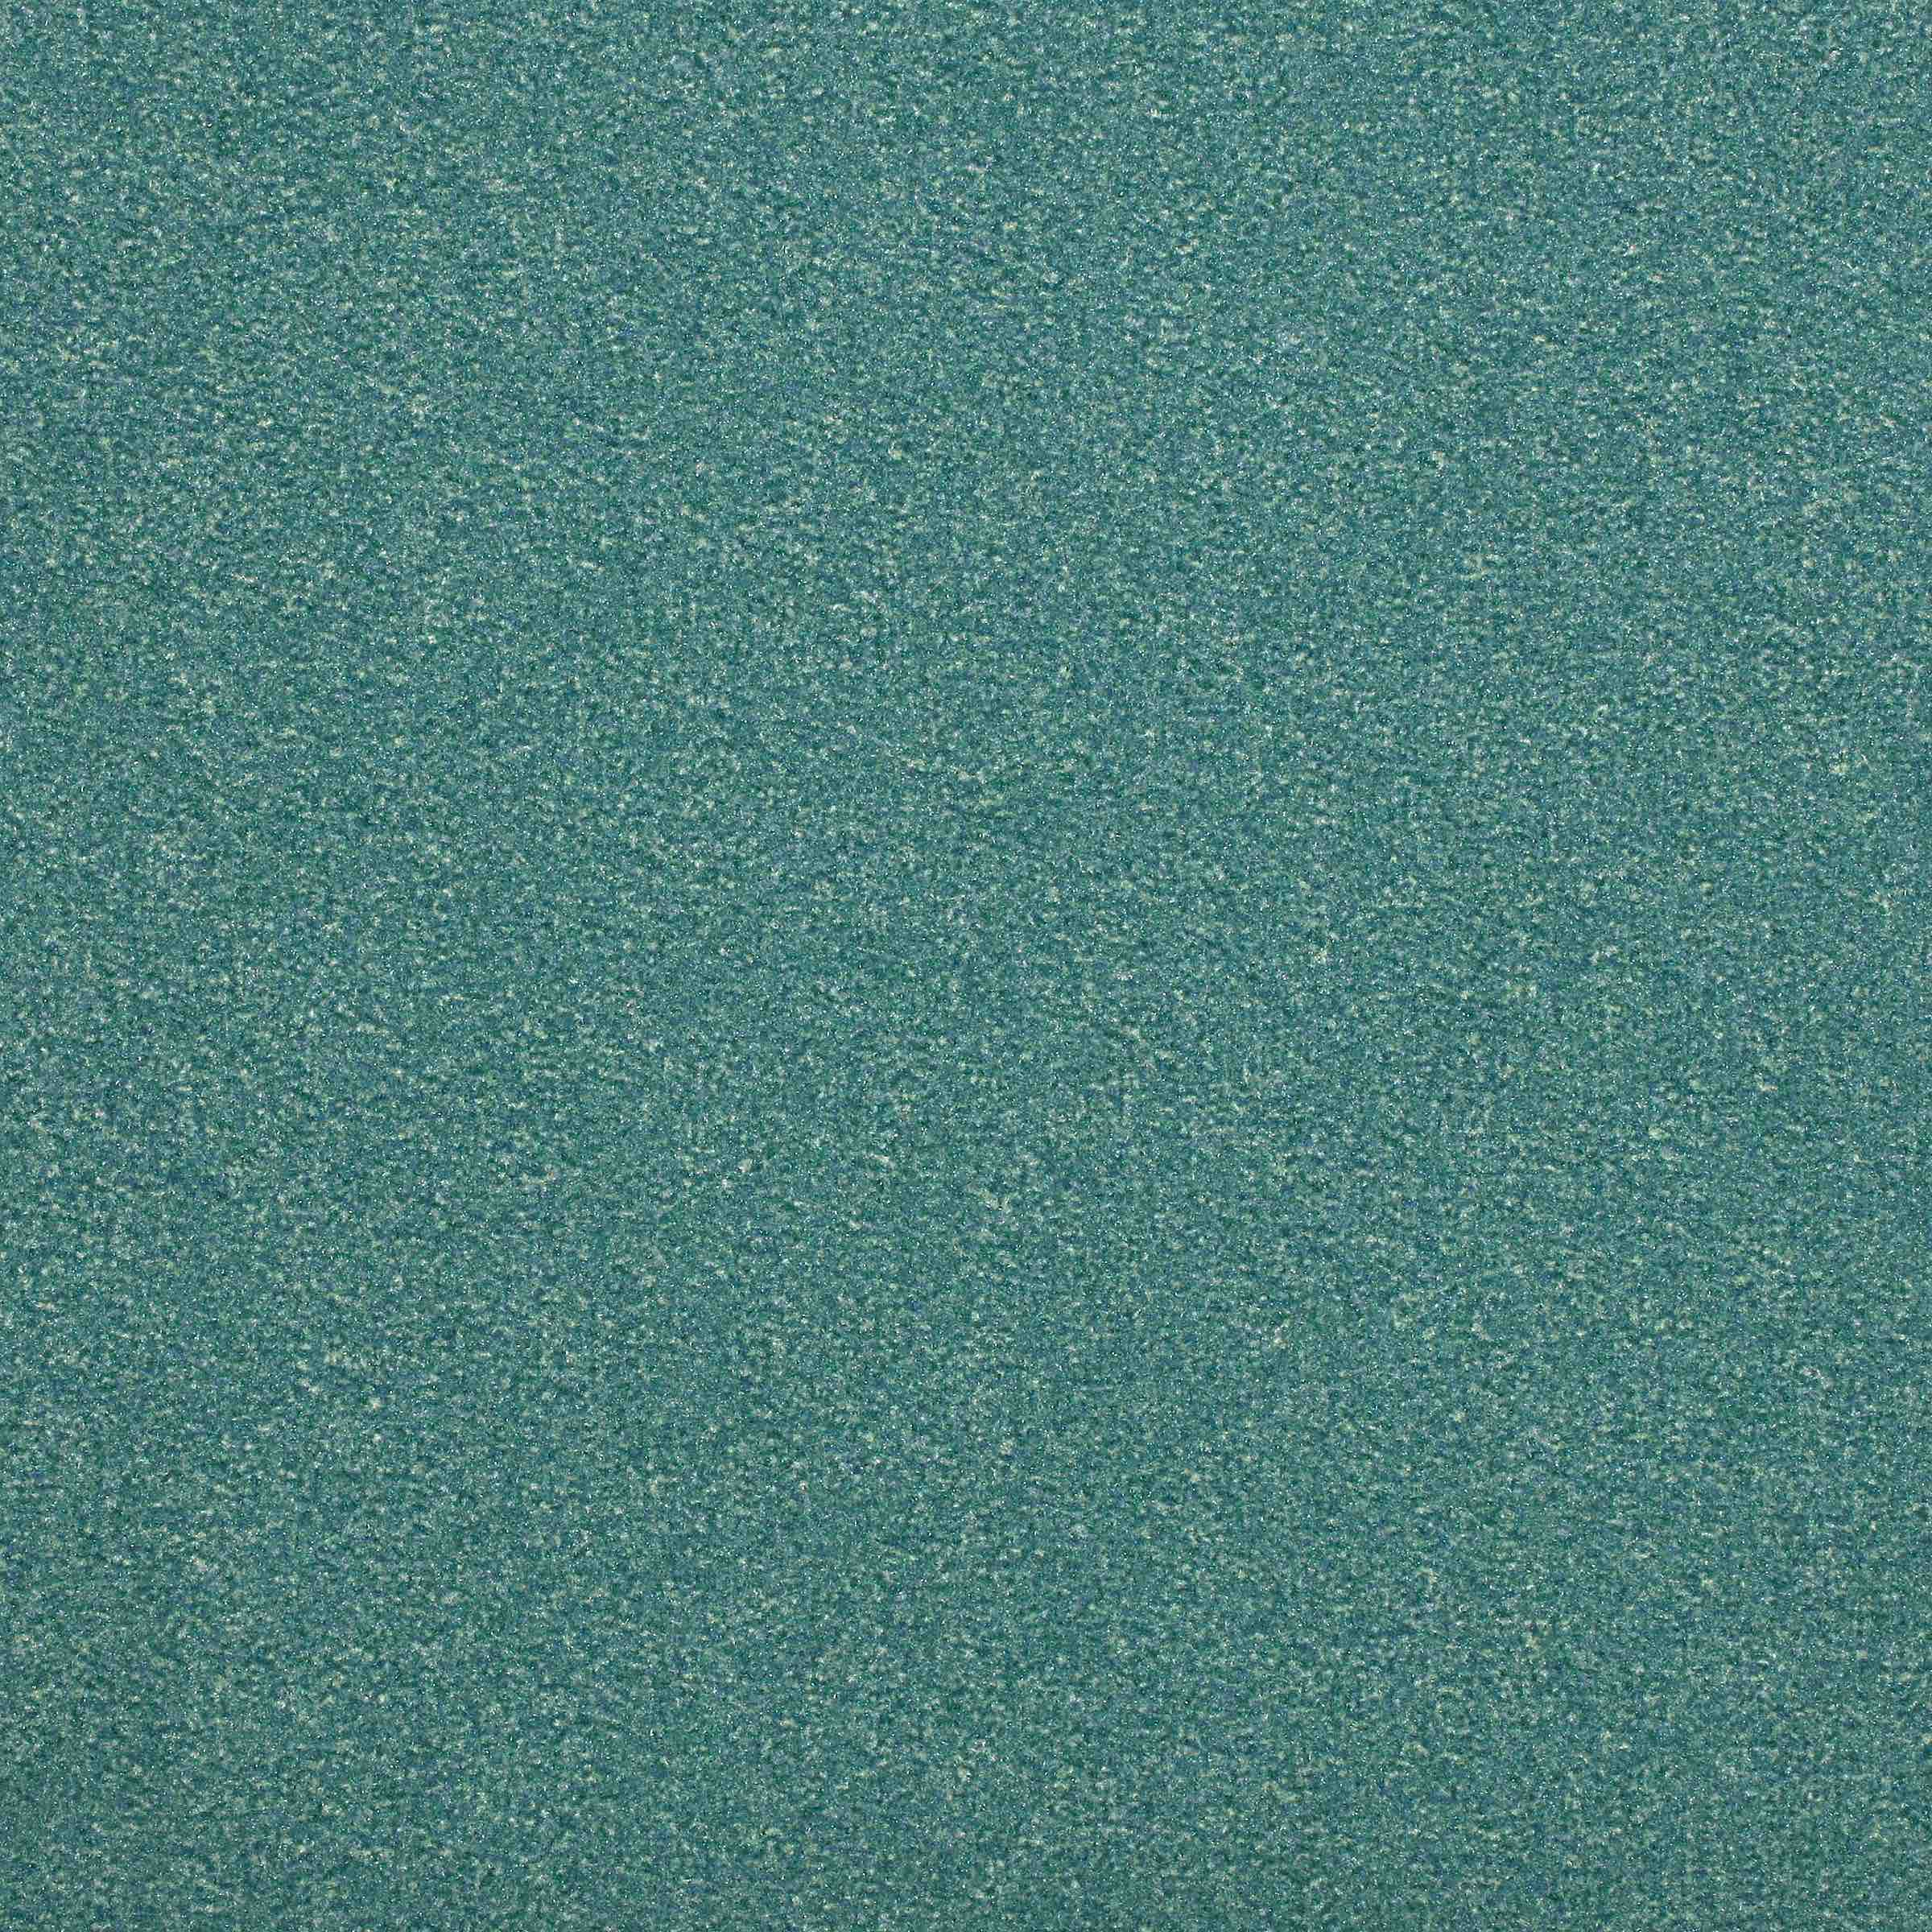 Workspace Cut Pile | Gecko Green, 5009C | Paragon Carpet Tiles | Commercial Carpet Tiles